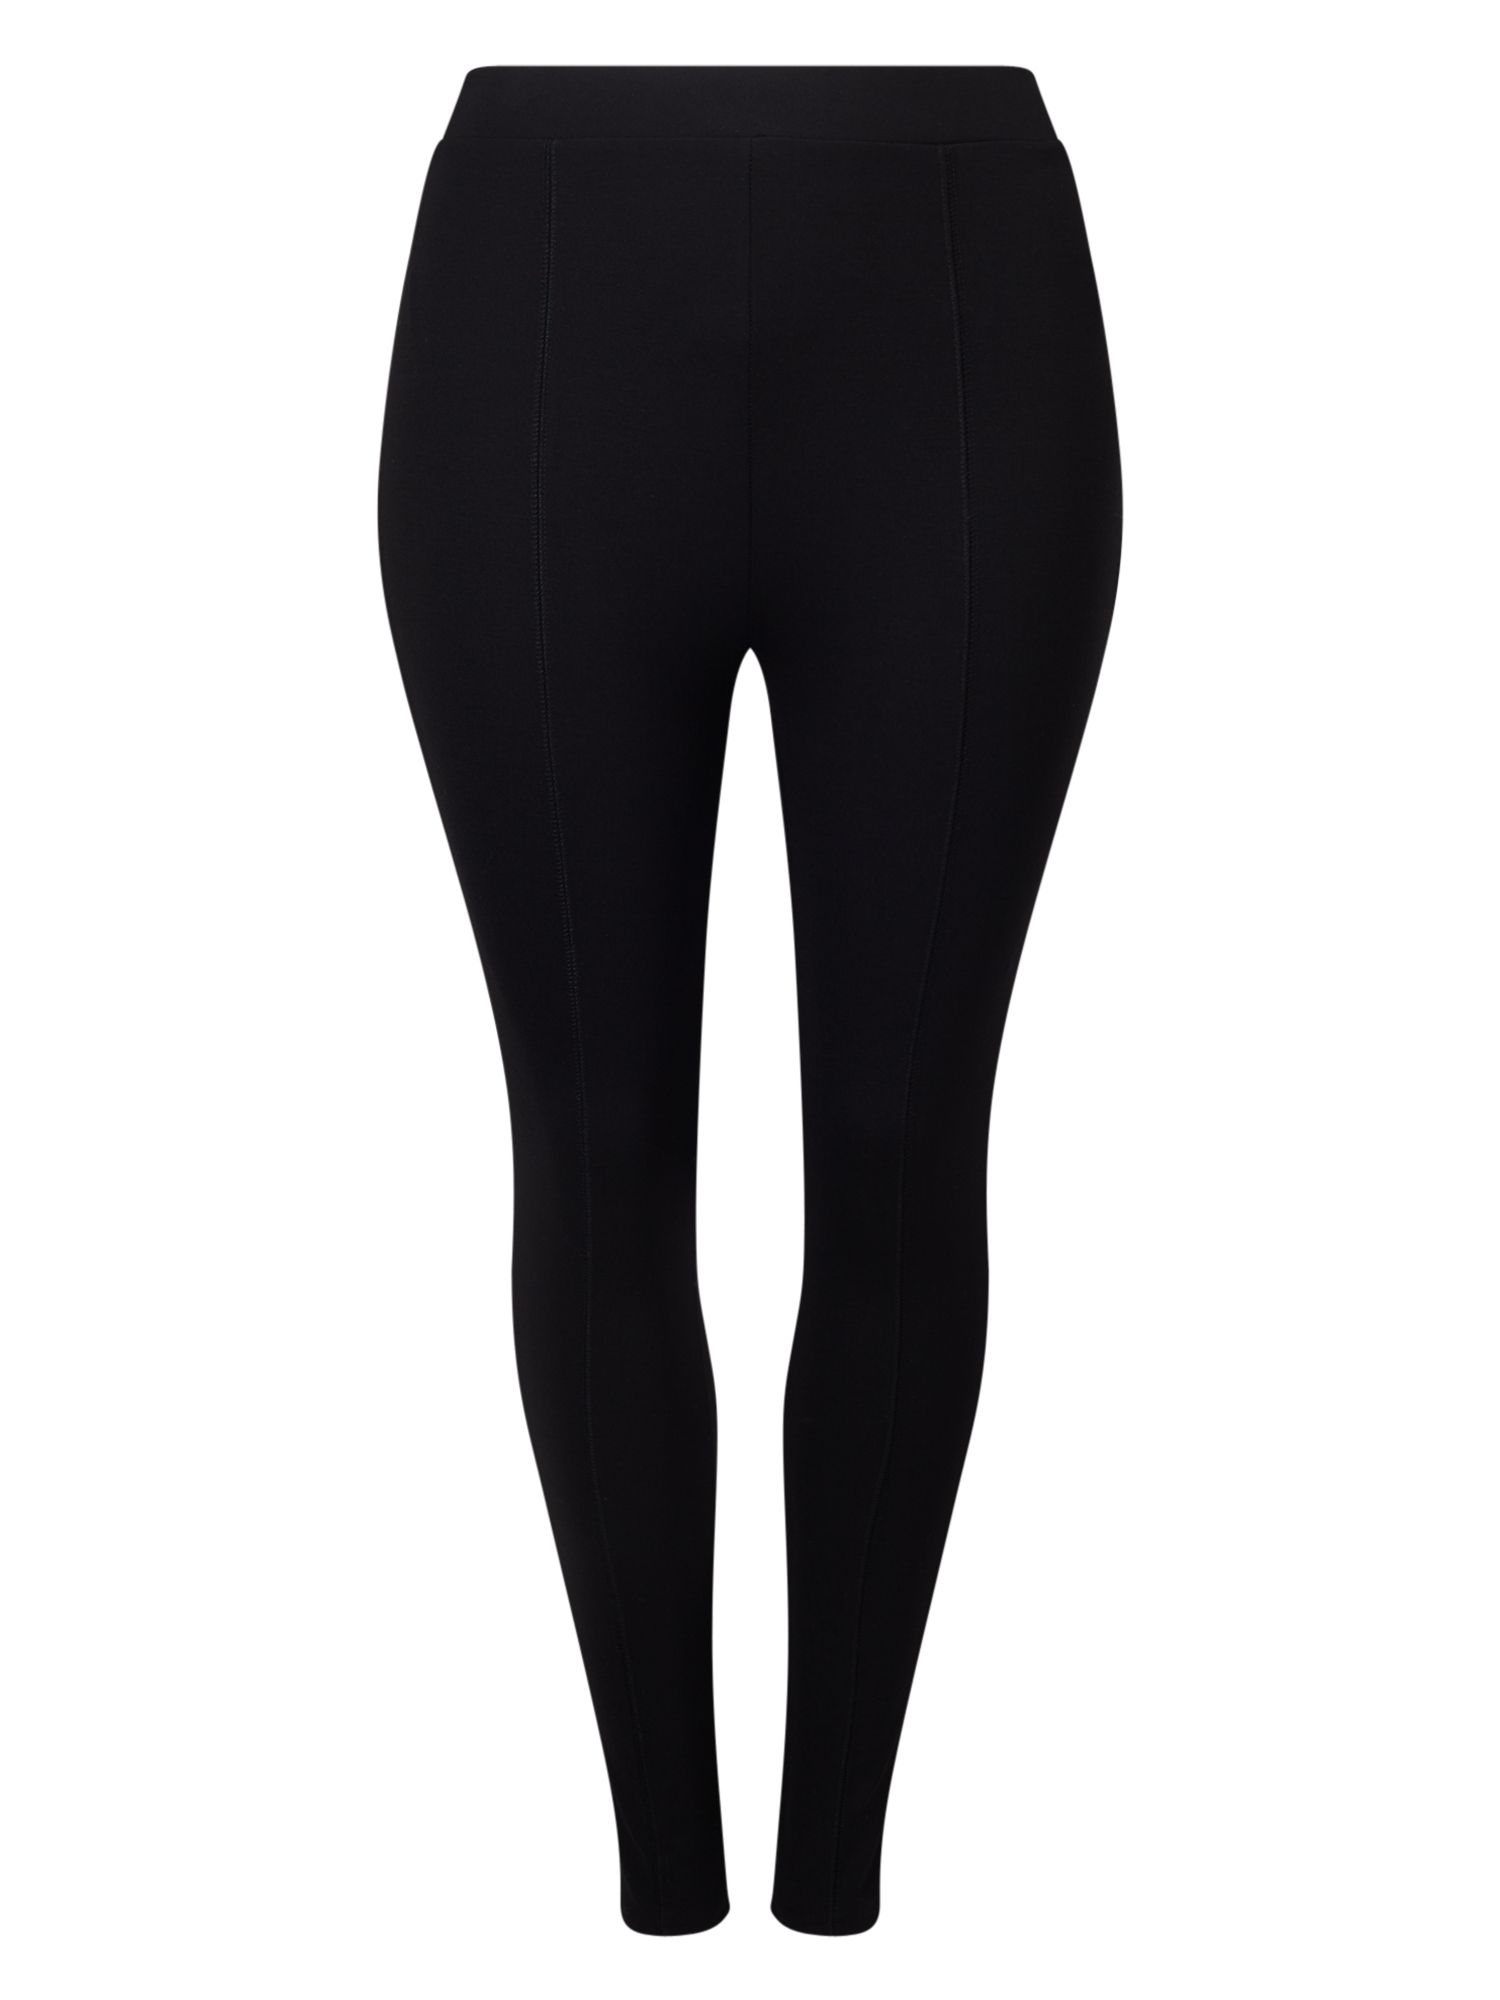 Studio 8 Eleanor Leggings, Black